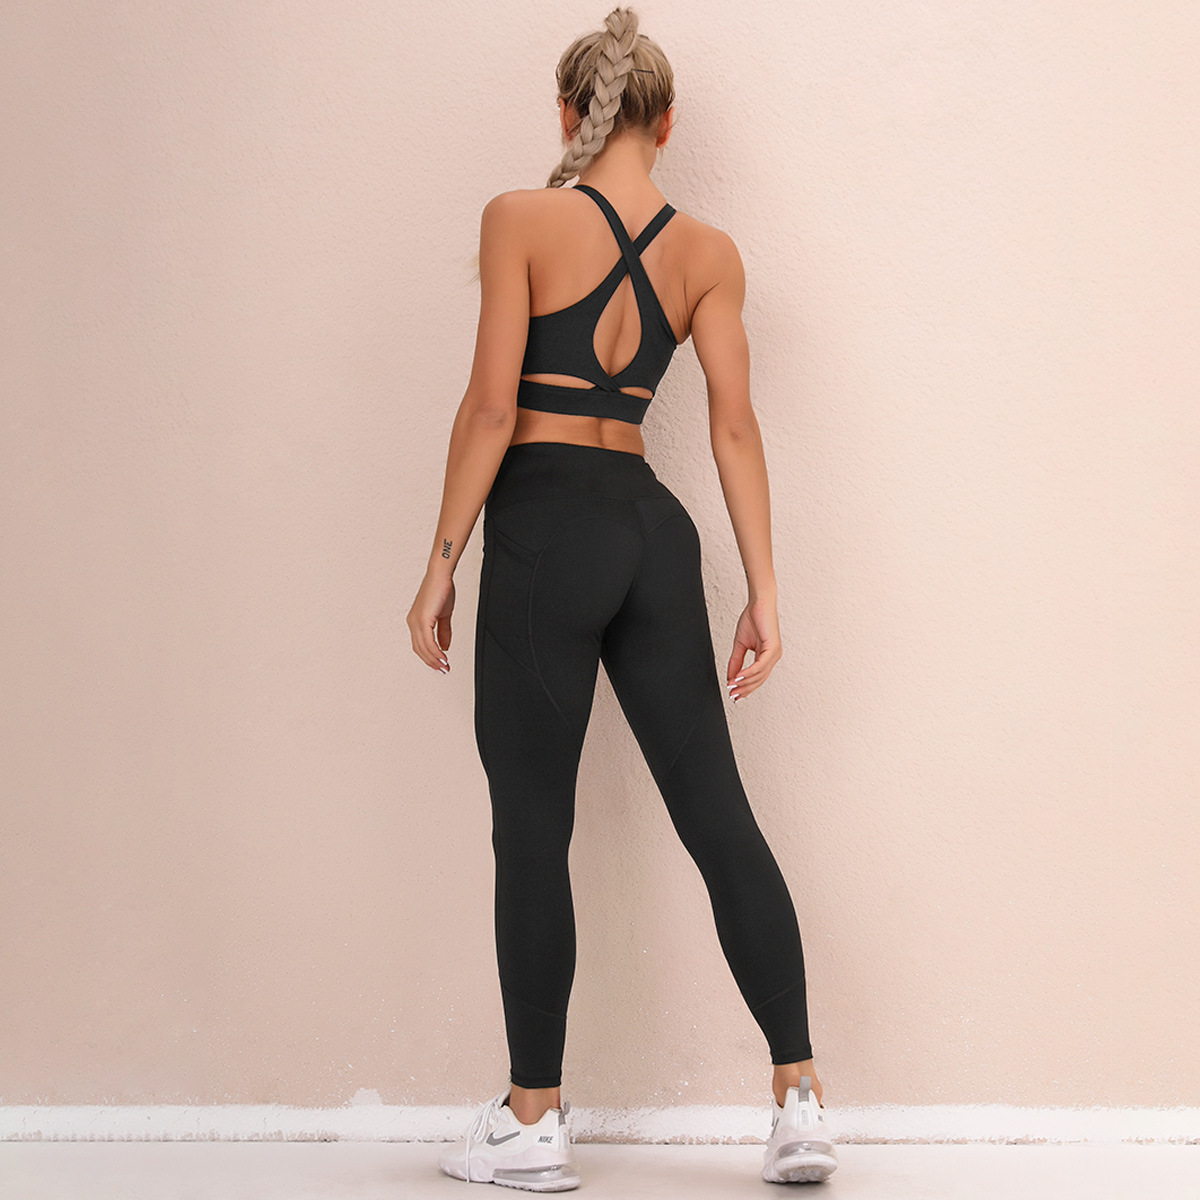 double-sided nylon high waist quick-drying pocket sports two-piece  NSNS23236